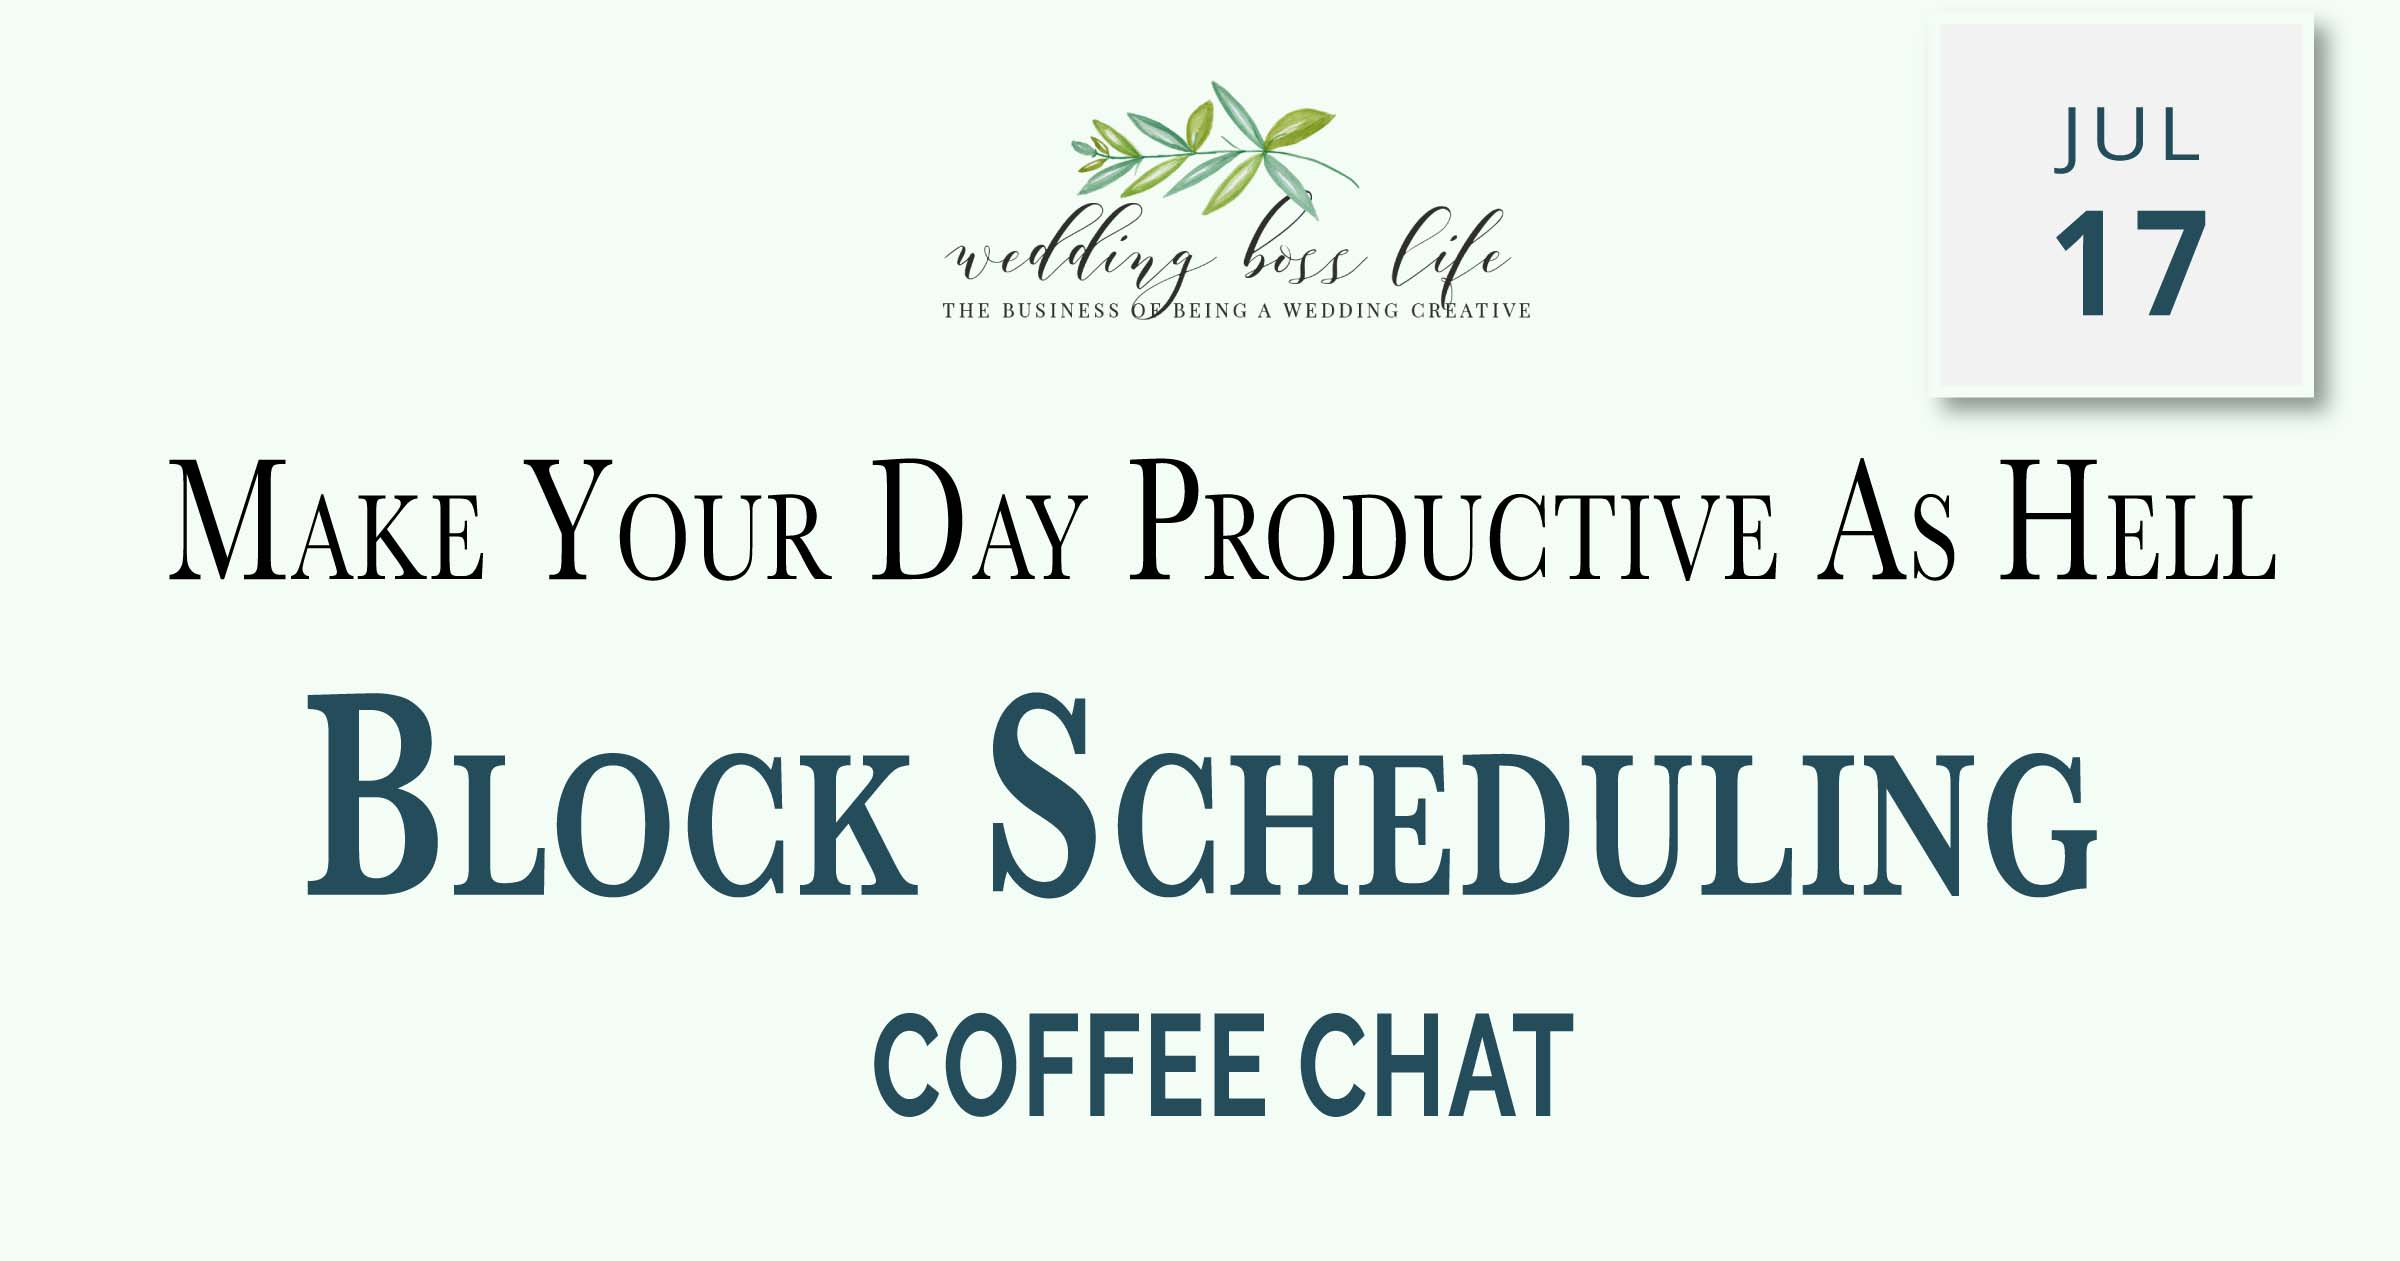 Make Your Day Productive as Hell